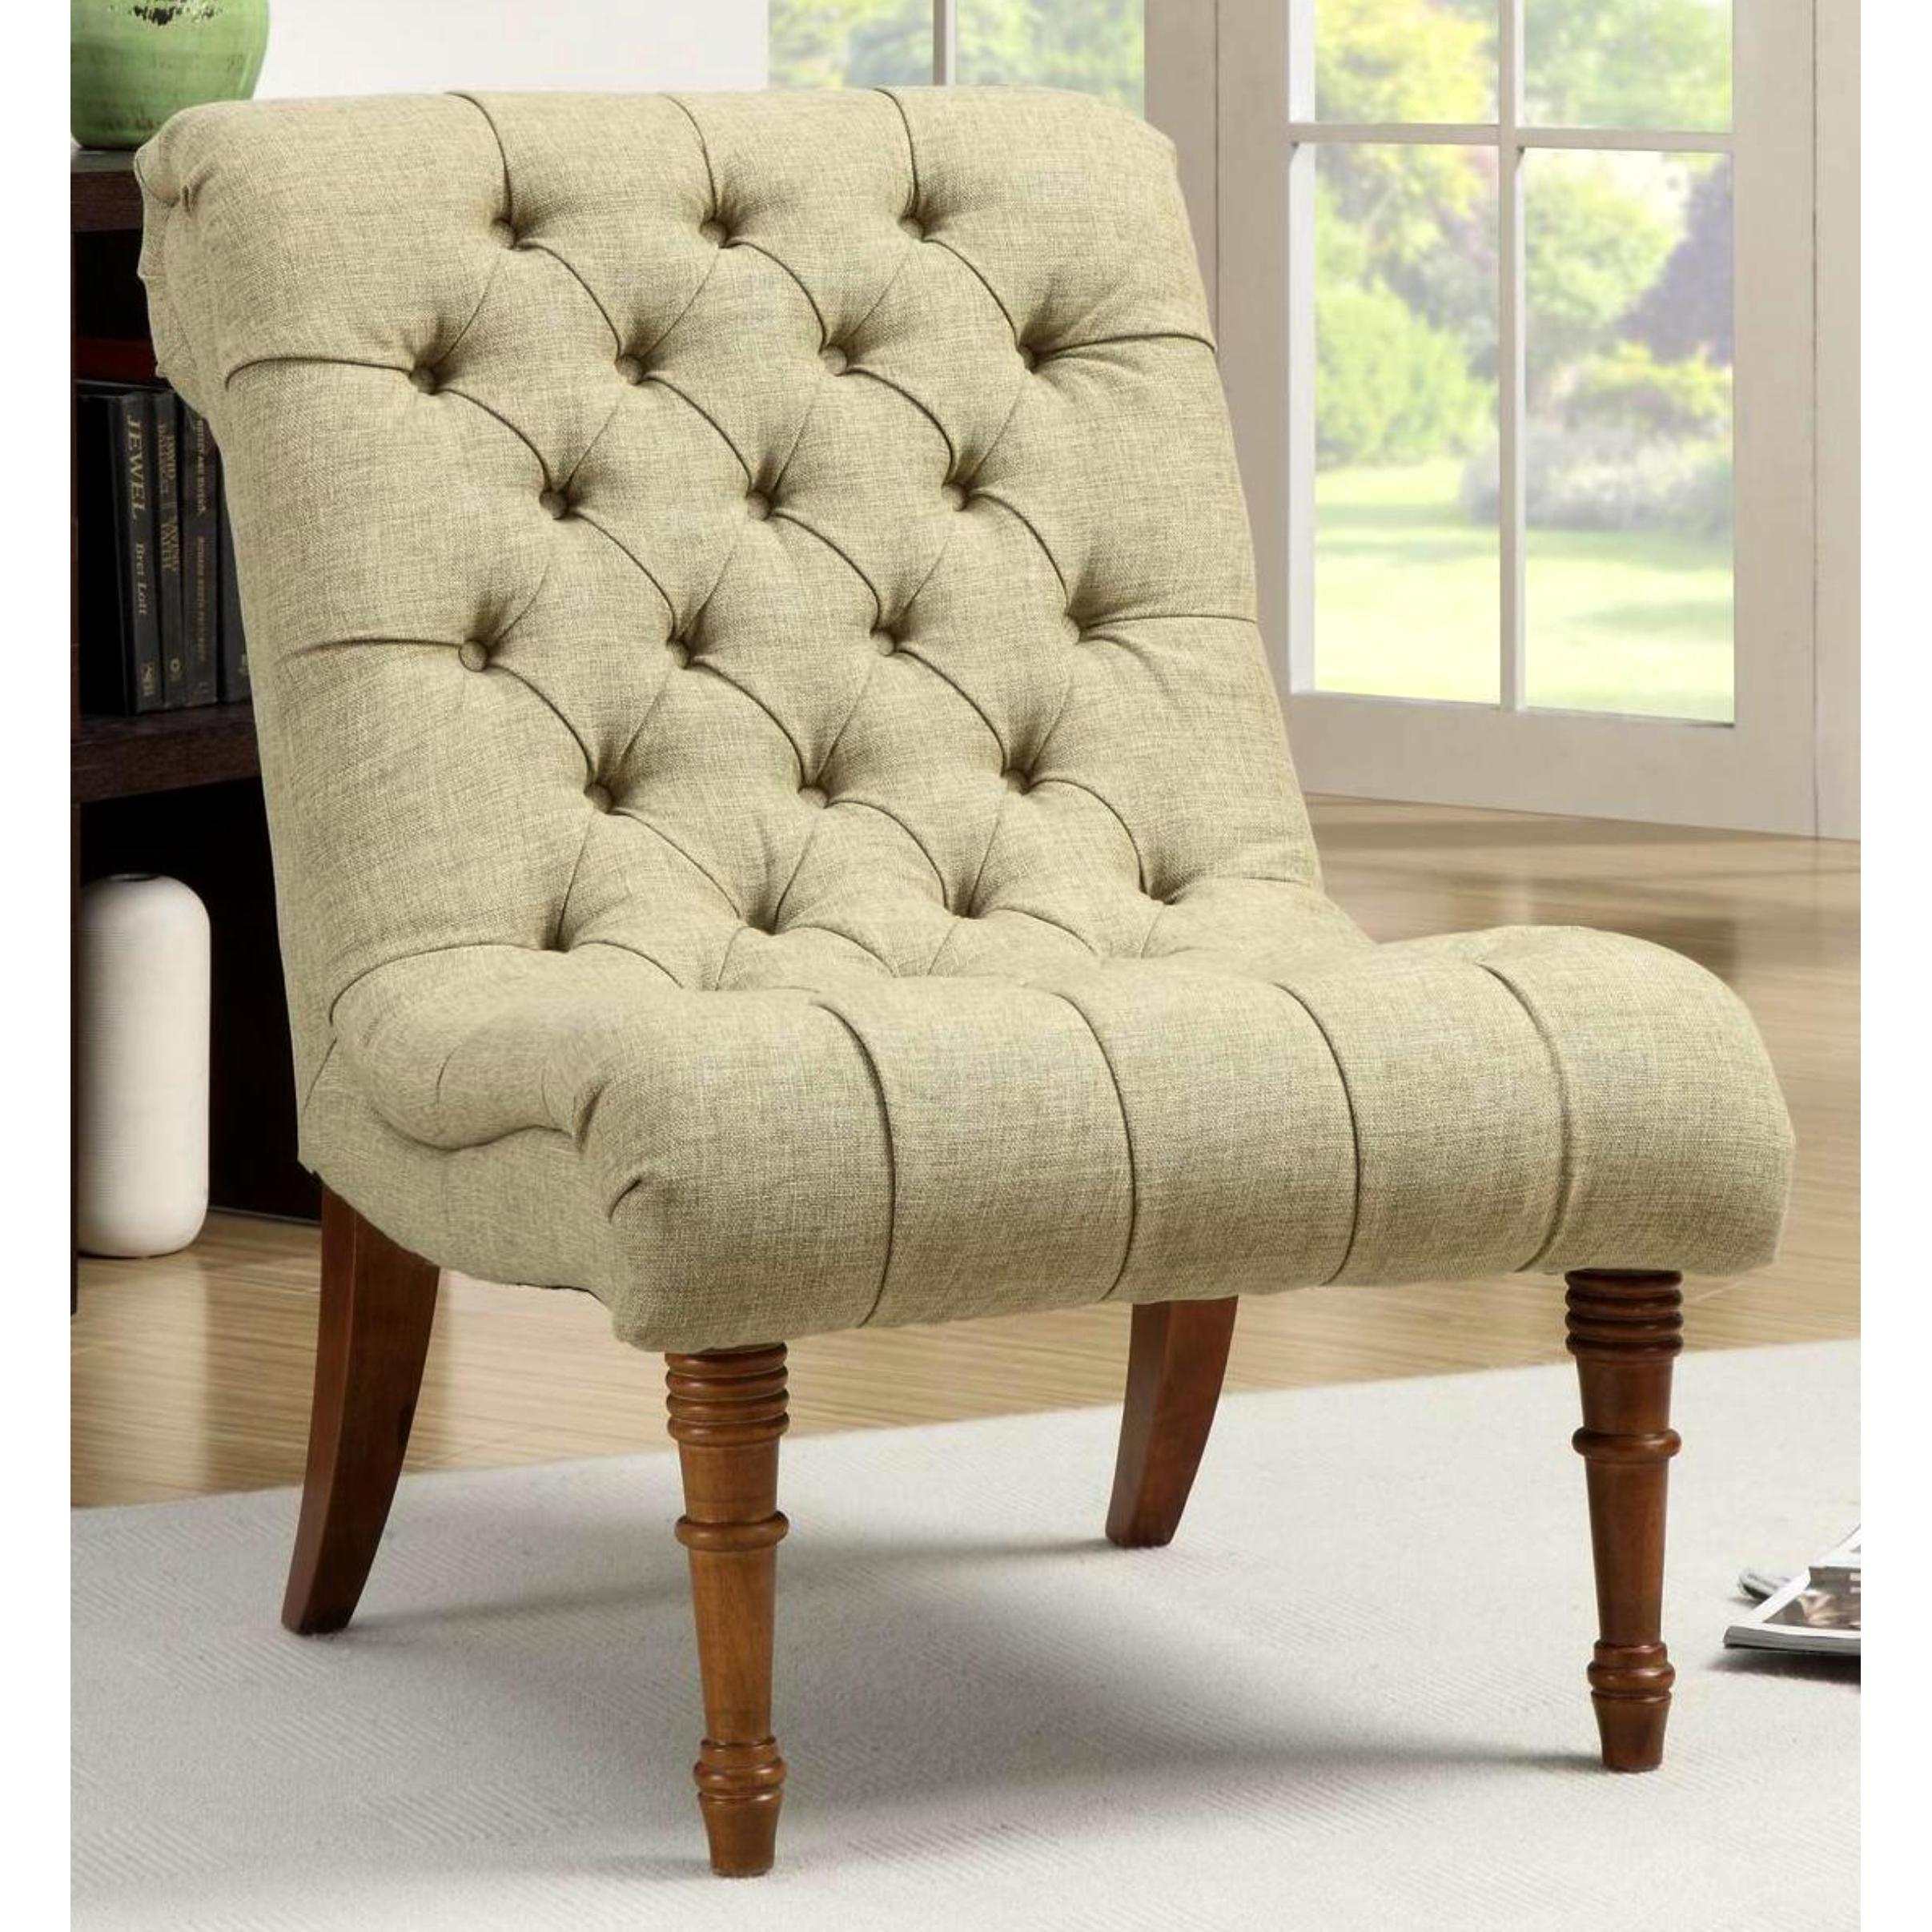 Unbranded Classic Button Tufted Mossy Green Living Room A...